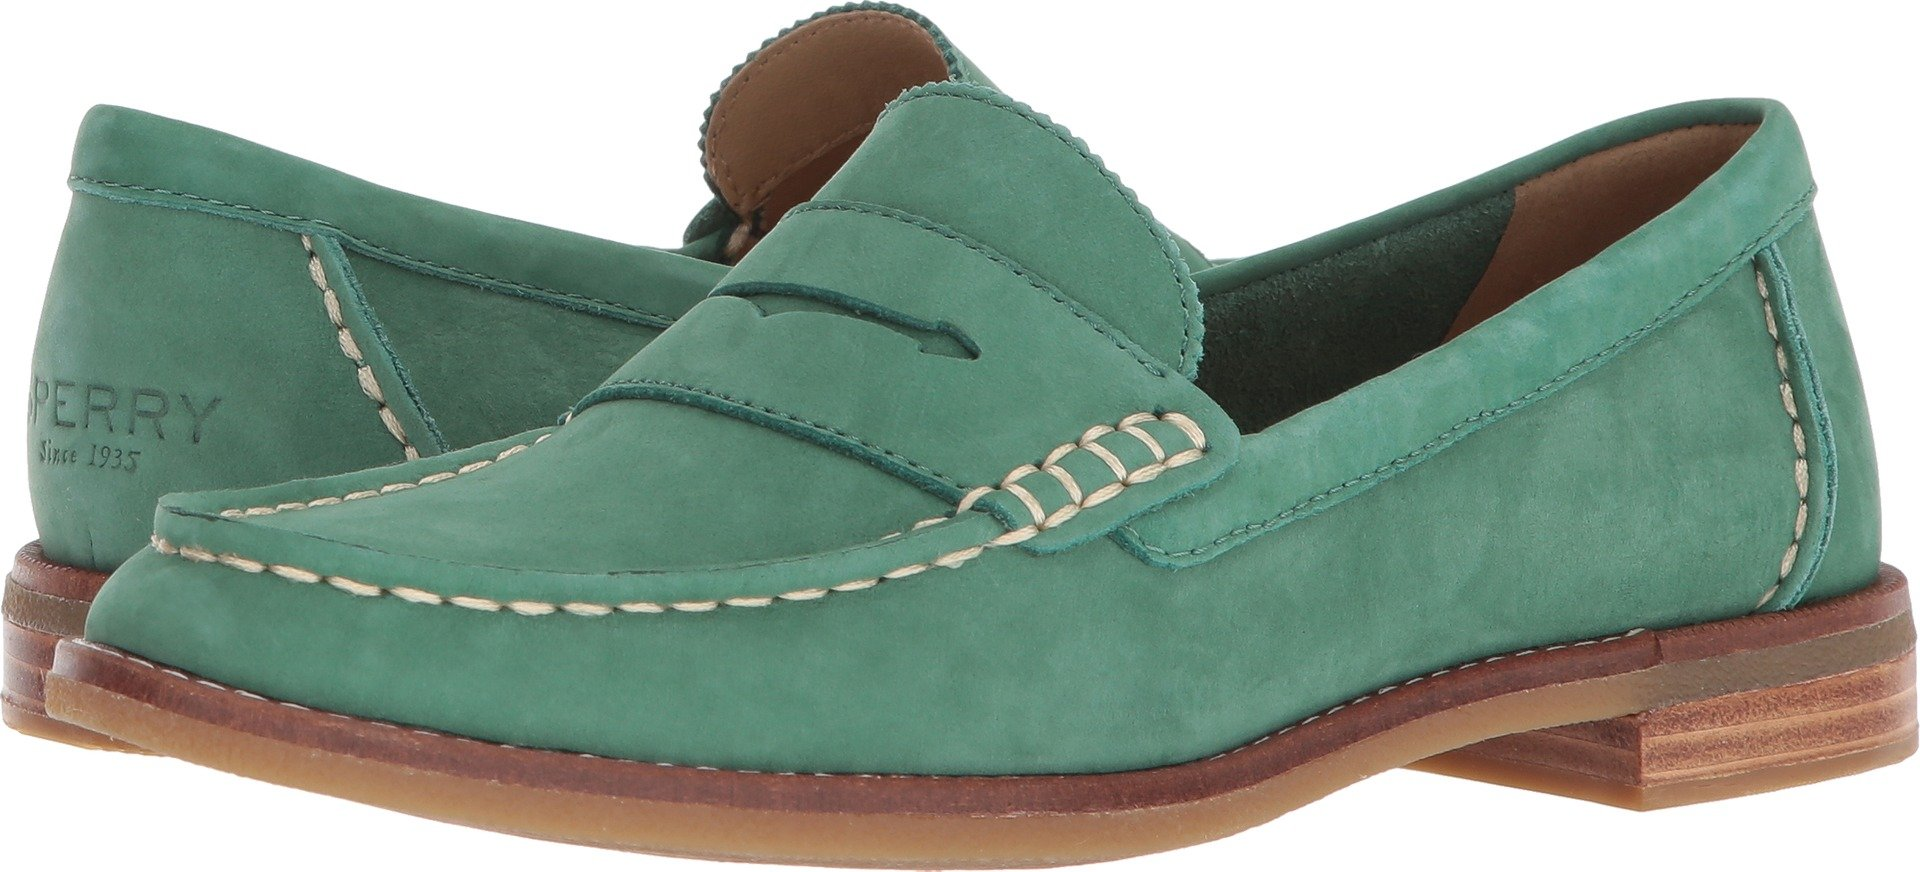 Sperry Top-Sider Seaport Penny Loafer